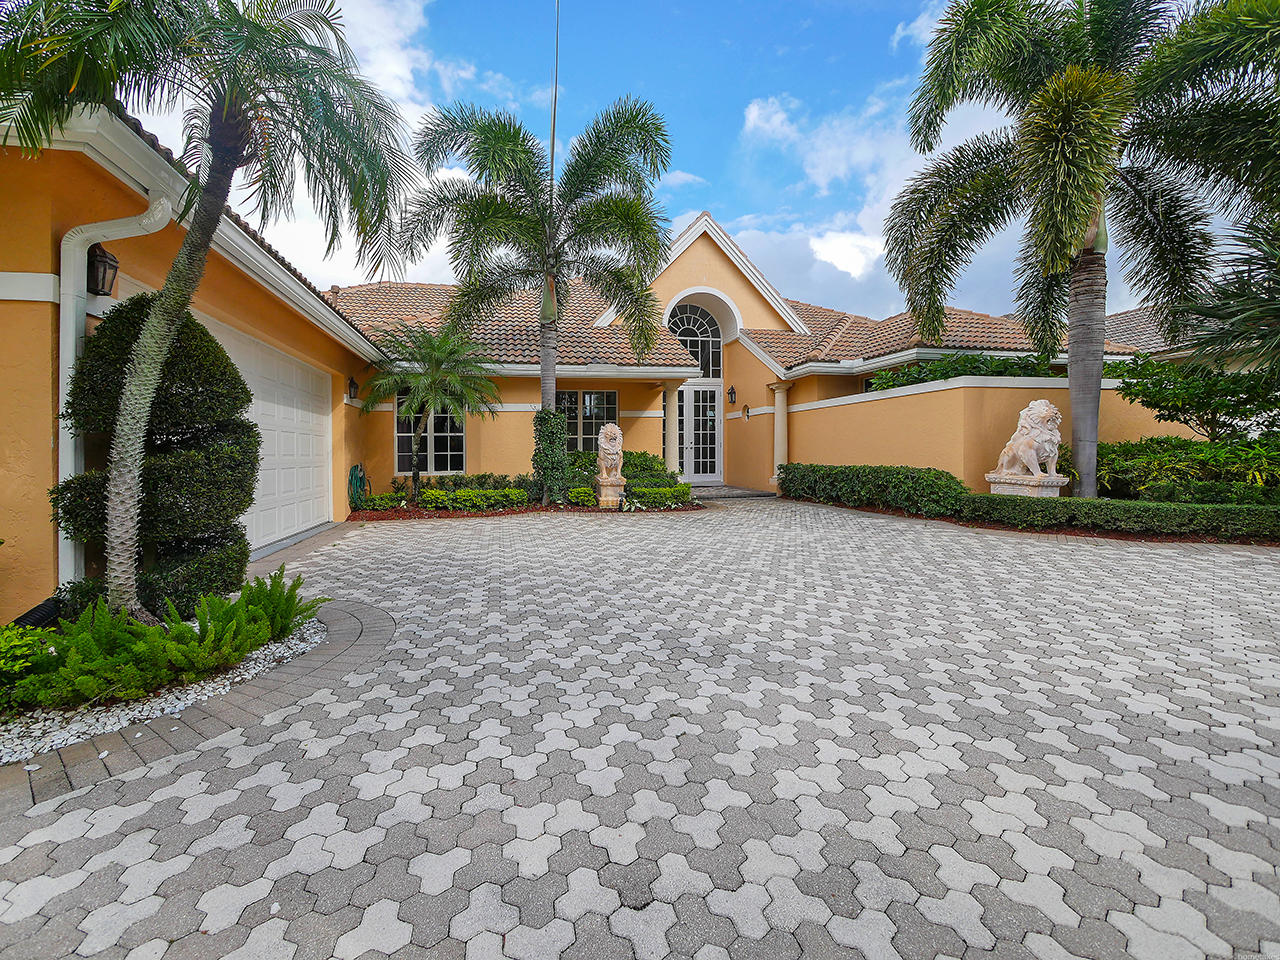 Home for sale in Saint James Palm Beach Gardens Florida